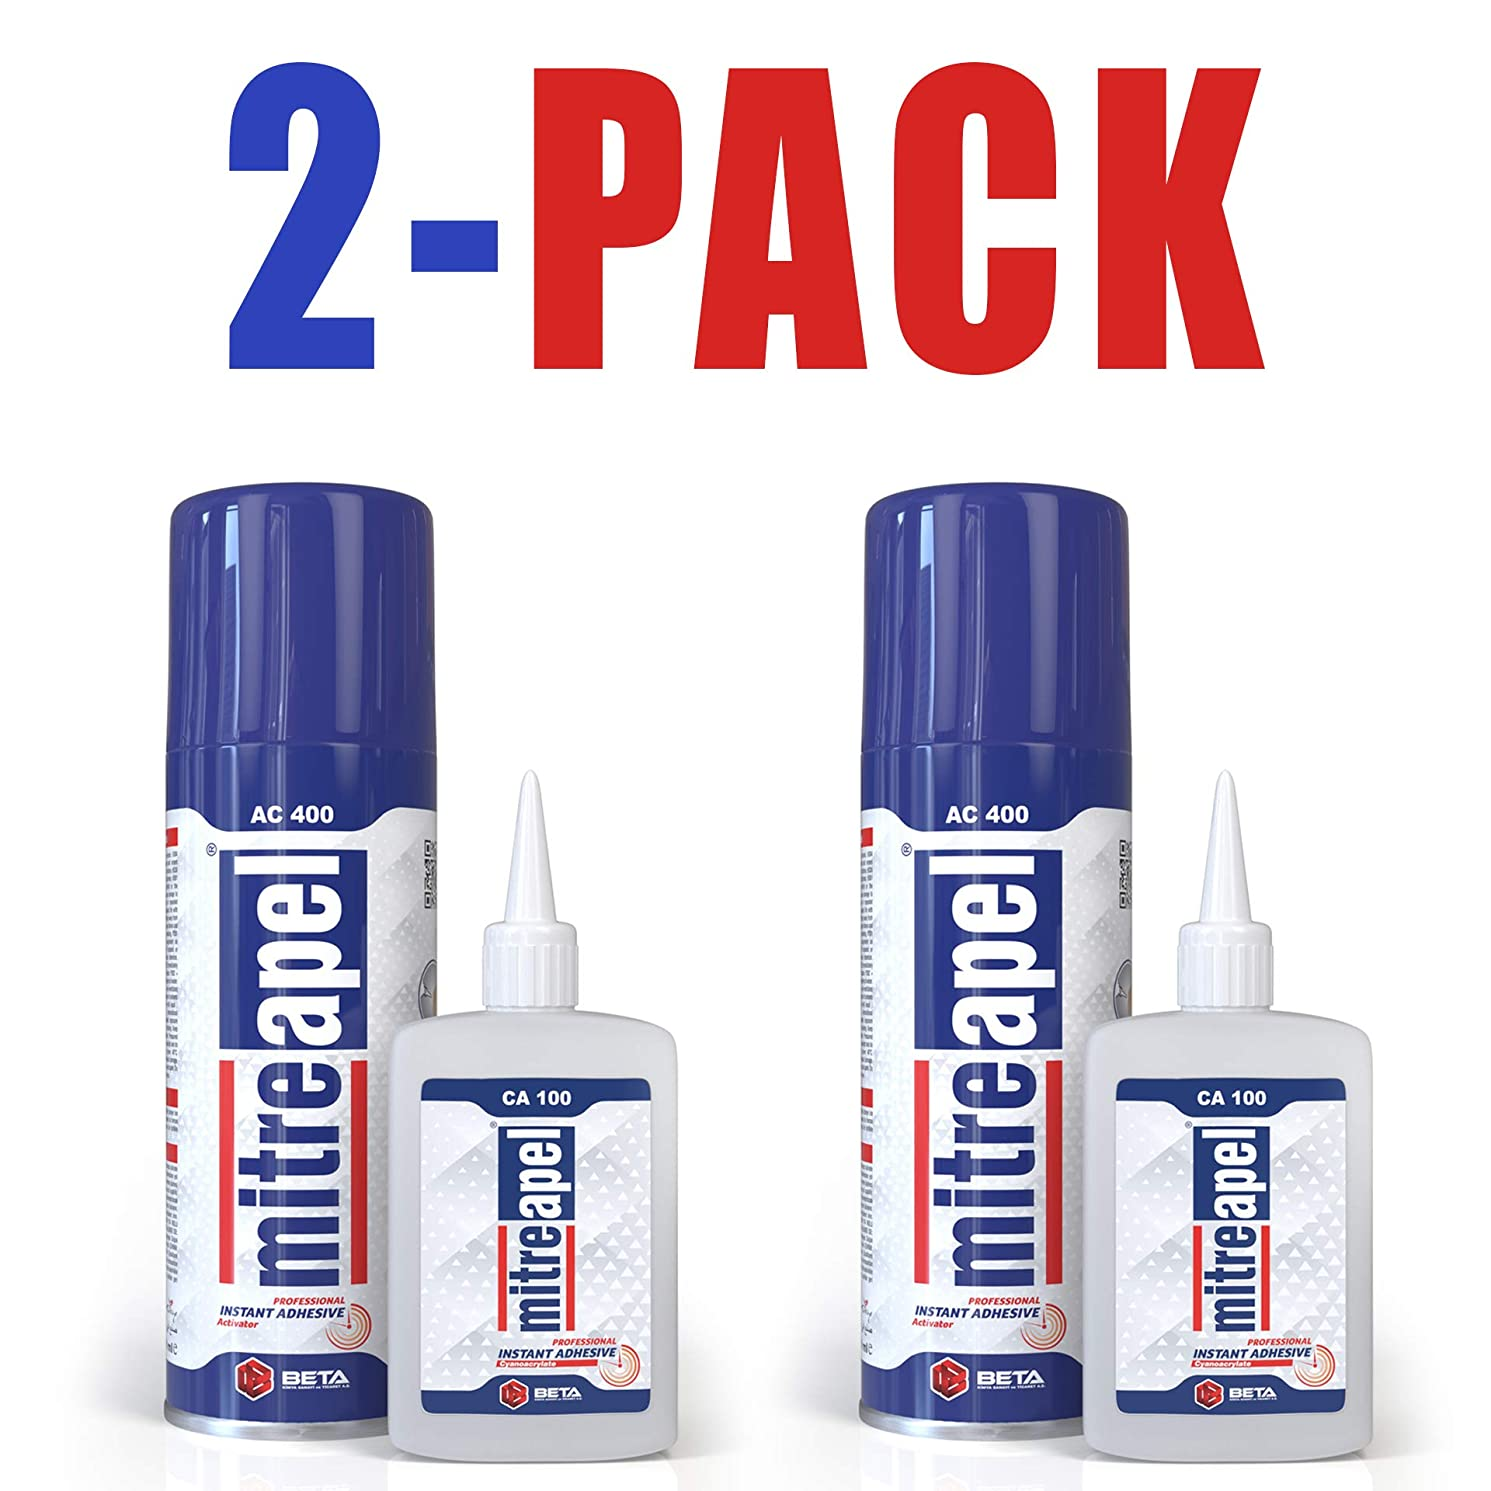 MITREAPEL Super CA Glue (3.5 oz.) with Spray Adhesive Activator (13.5 fl oz.) -Crazy Clear Craft Glue for Wood, Plastic, Metal, Leather, Ceramic - Cyanoacrylate Glue for Crafting and Building (2 Pack)